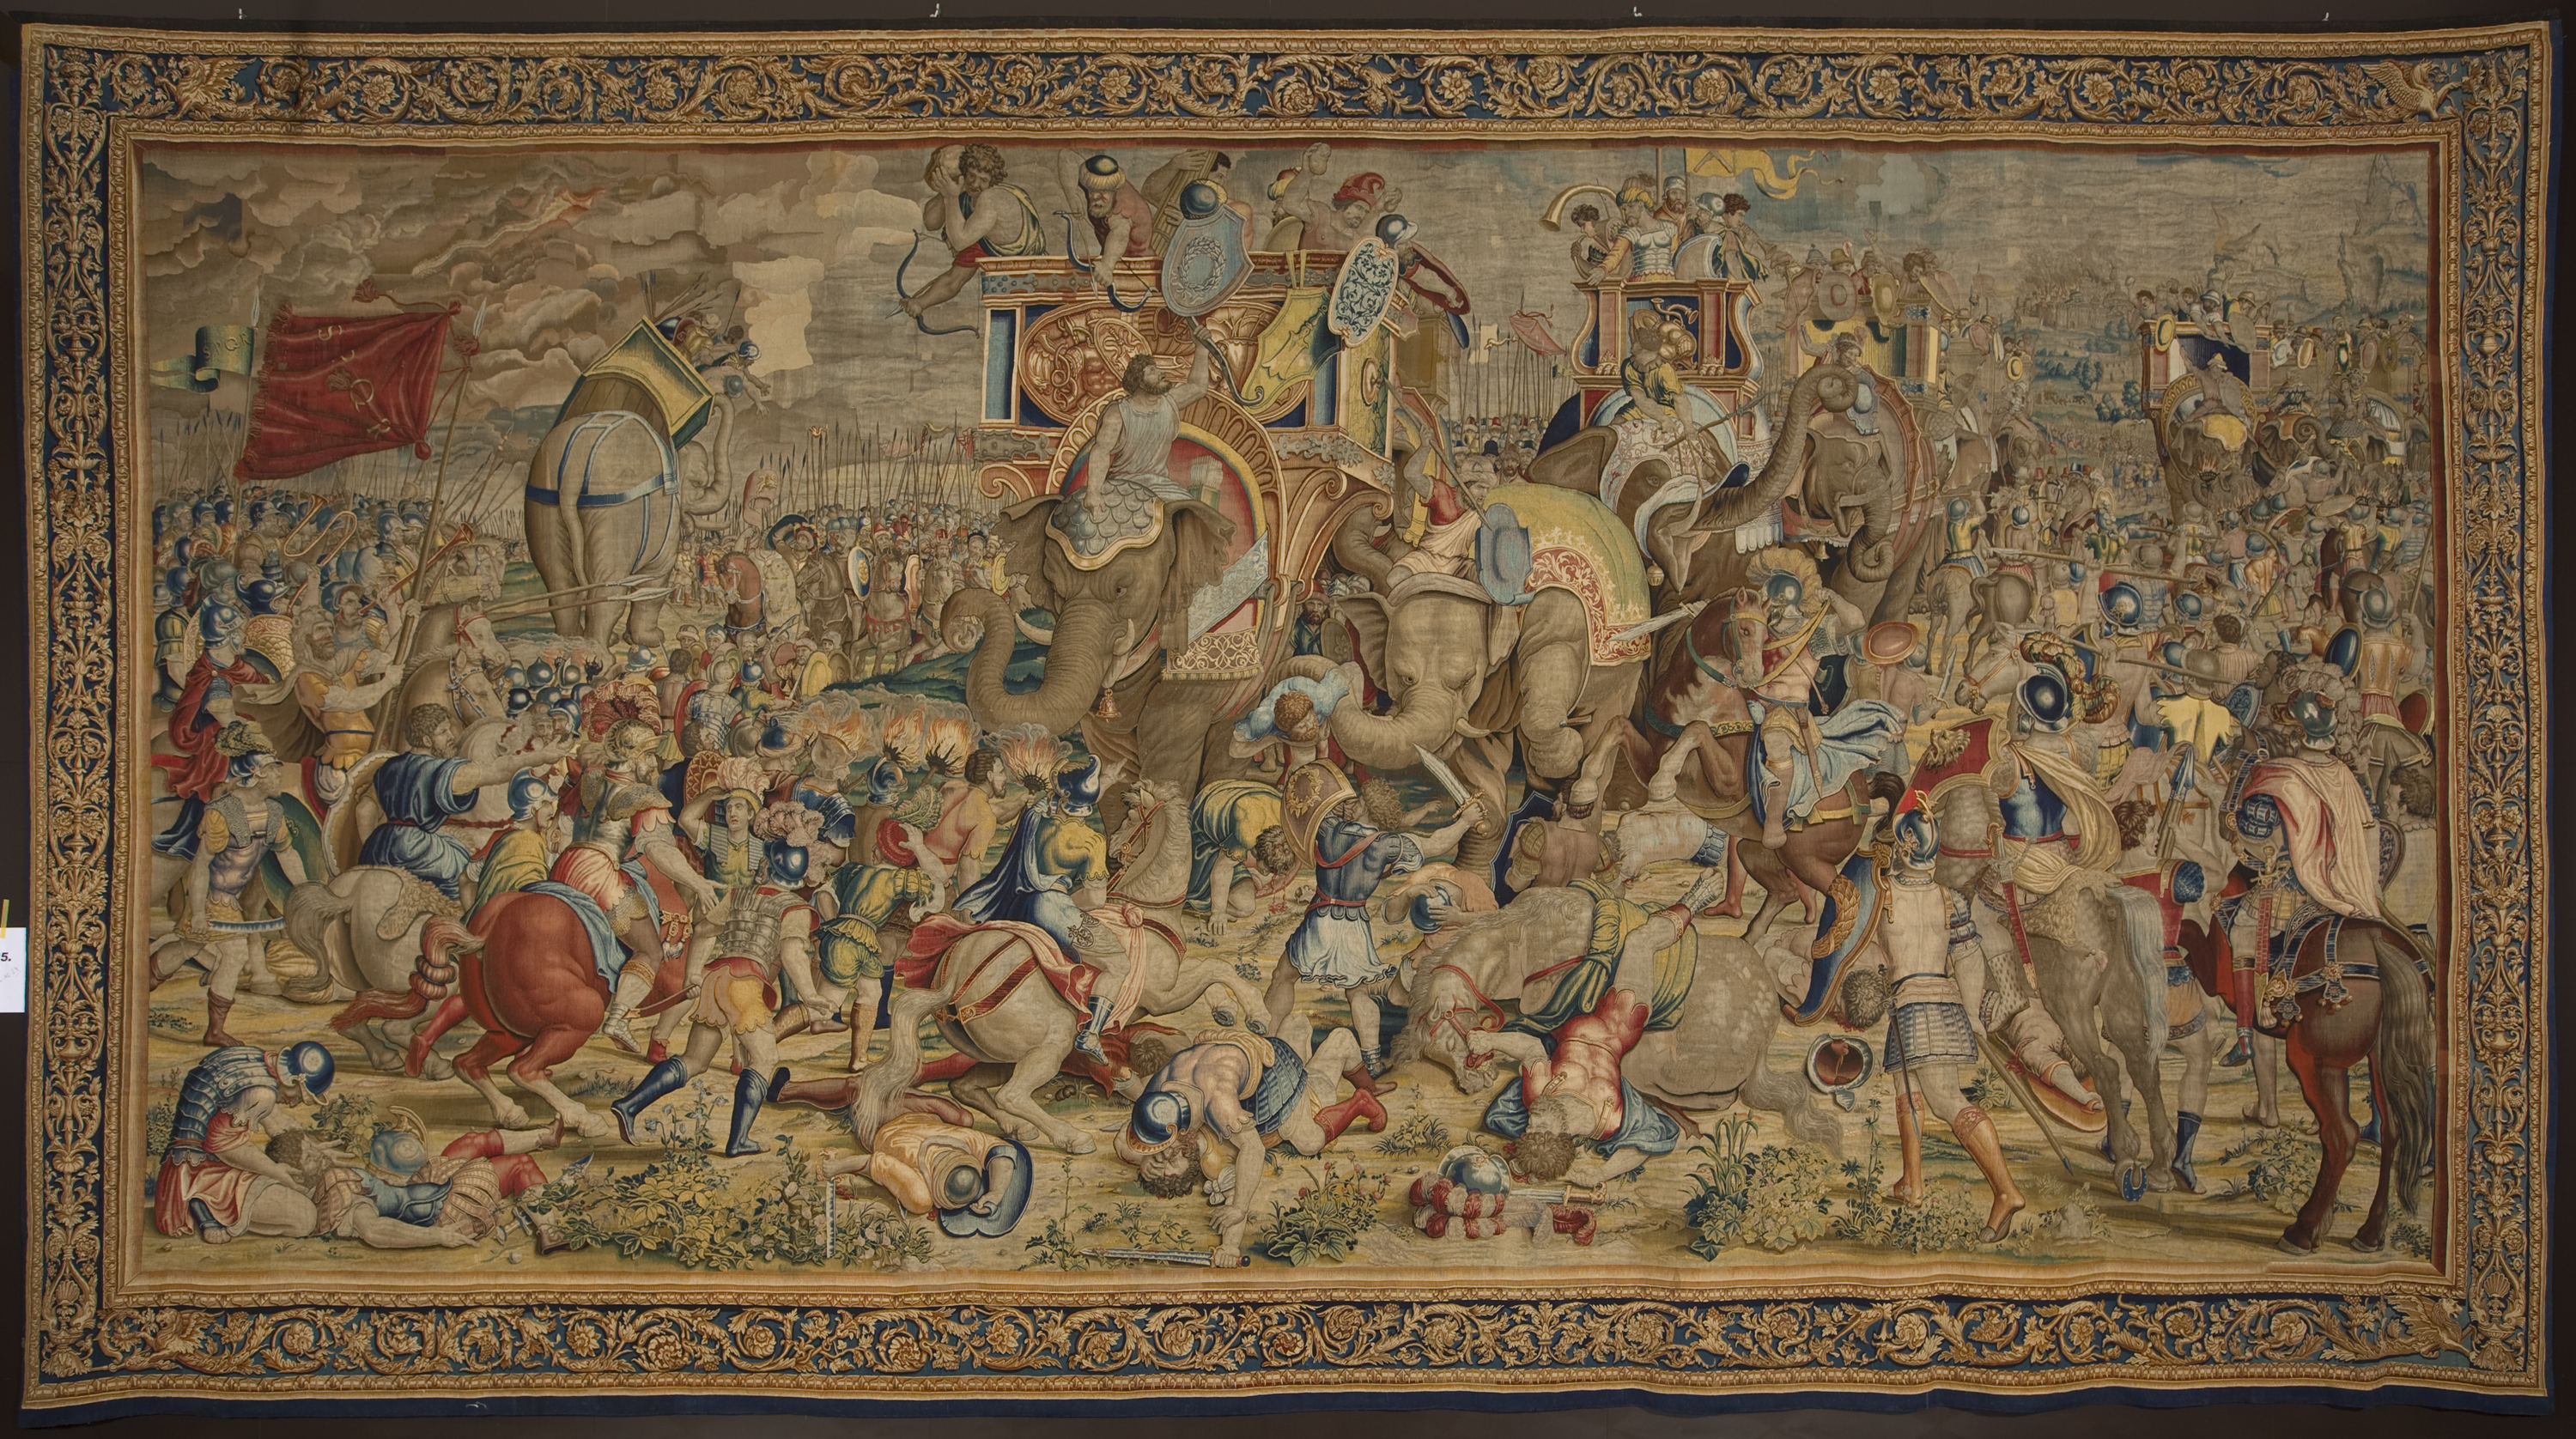 <em>The Battle of Zama</em>, fifth tapestry of The Story of Scipio, Collection of Philip II, inherited from Mary of Hungary, Cartoons by Giulio Romano, Produced in Brussels by Baltasar van Vlierden, ca. 1544. Madrid Royal Palace. Inv. 10005931, cat. TA-26/5.